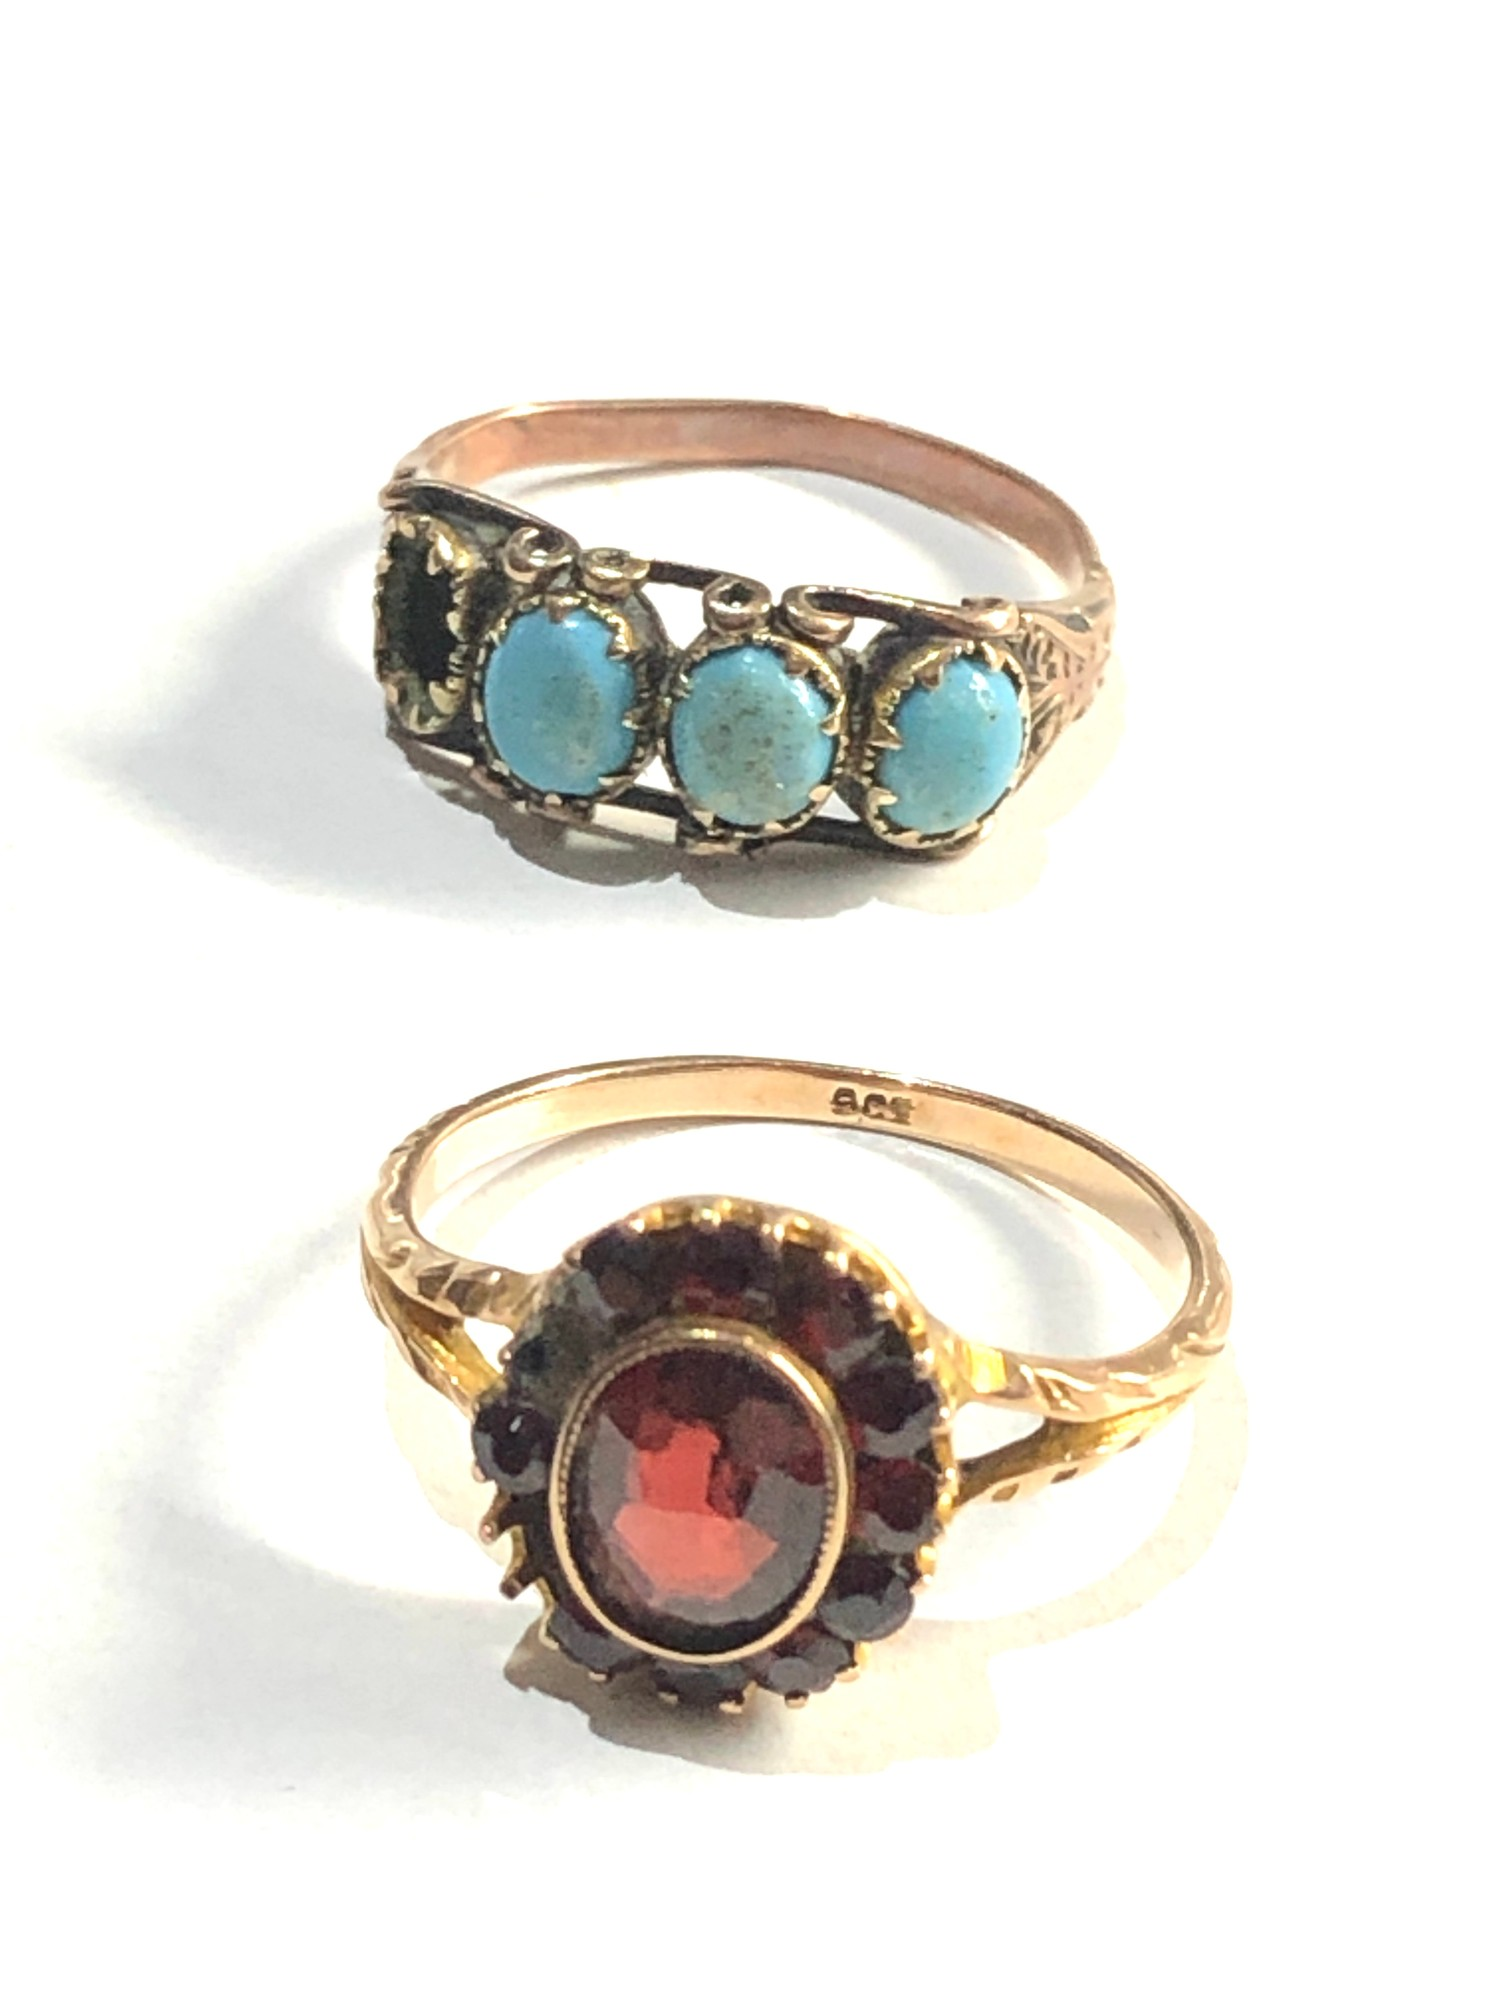 2 x Antique 9ct gold rings inc. garnet, turquoise *one stone missing